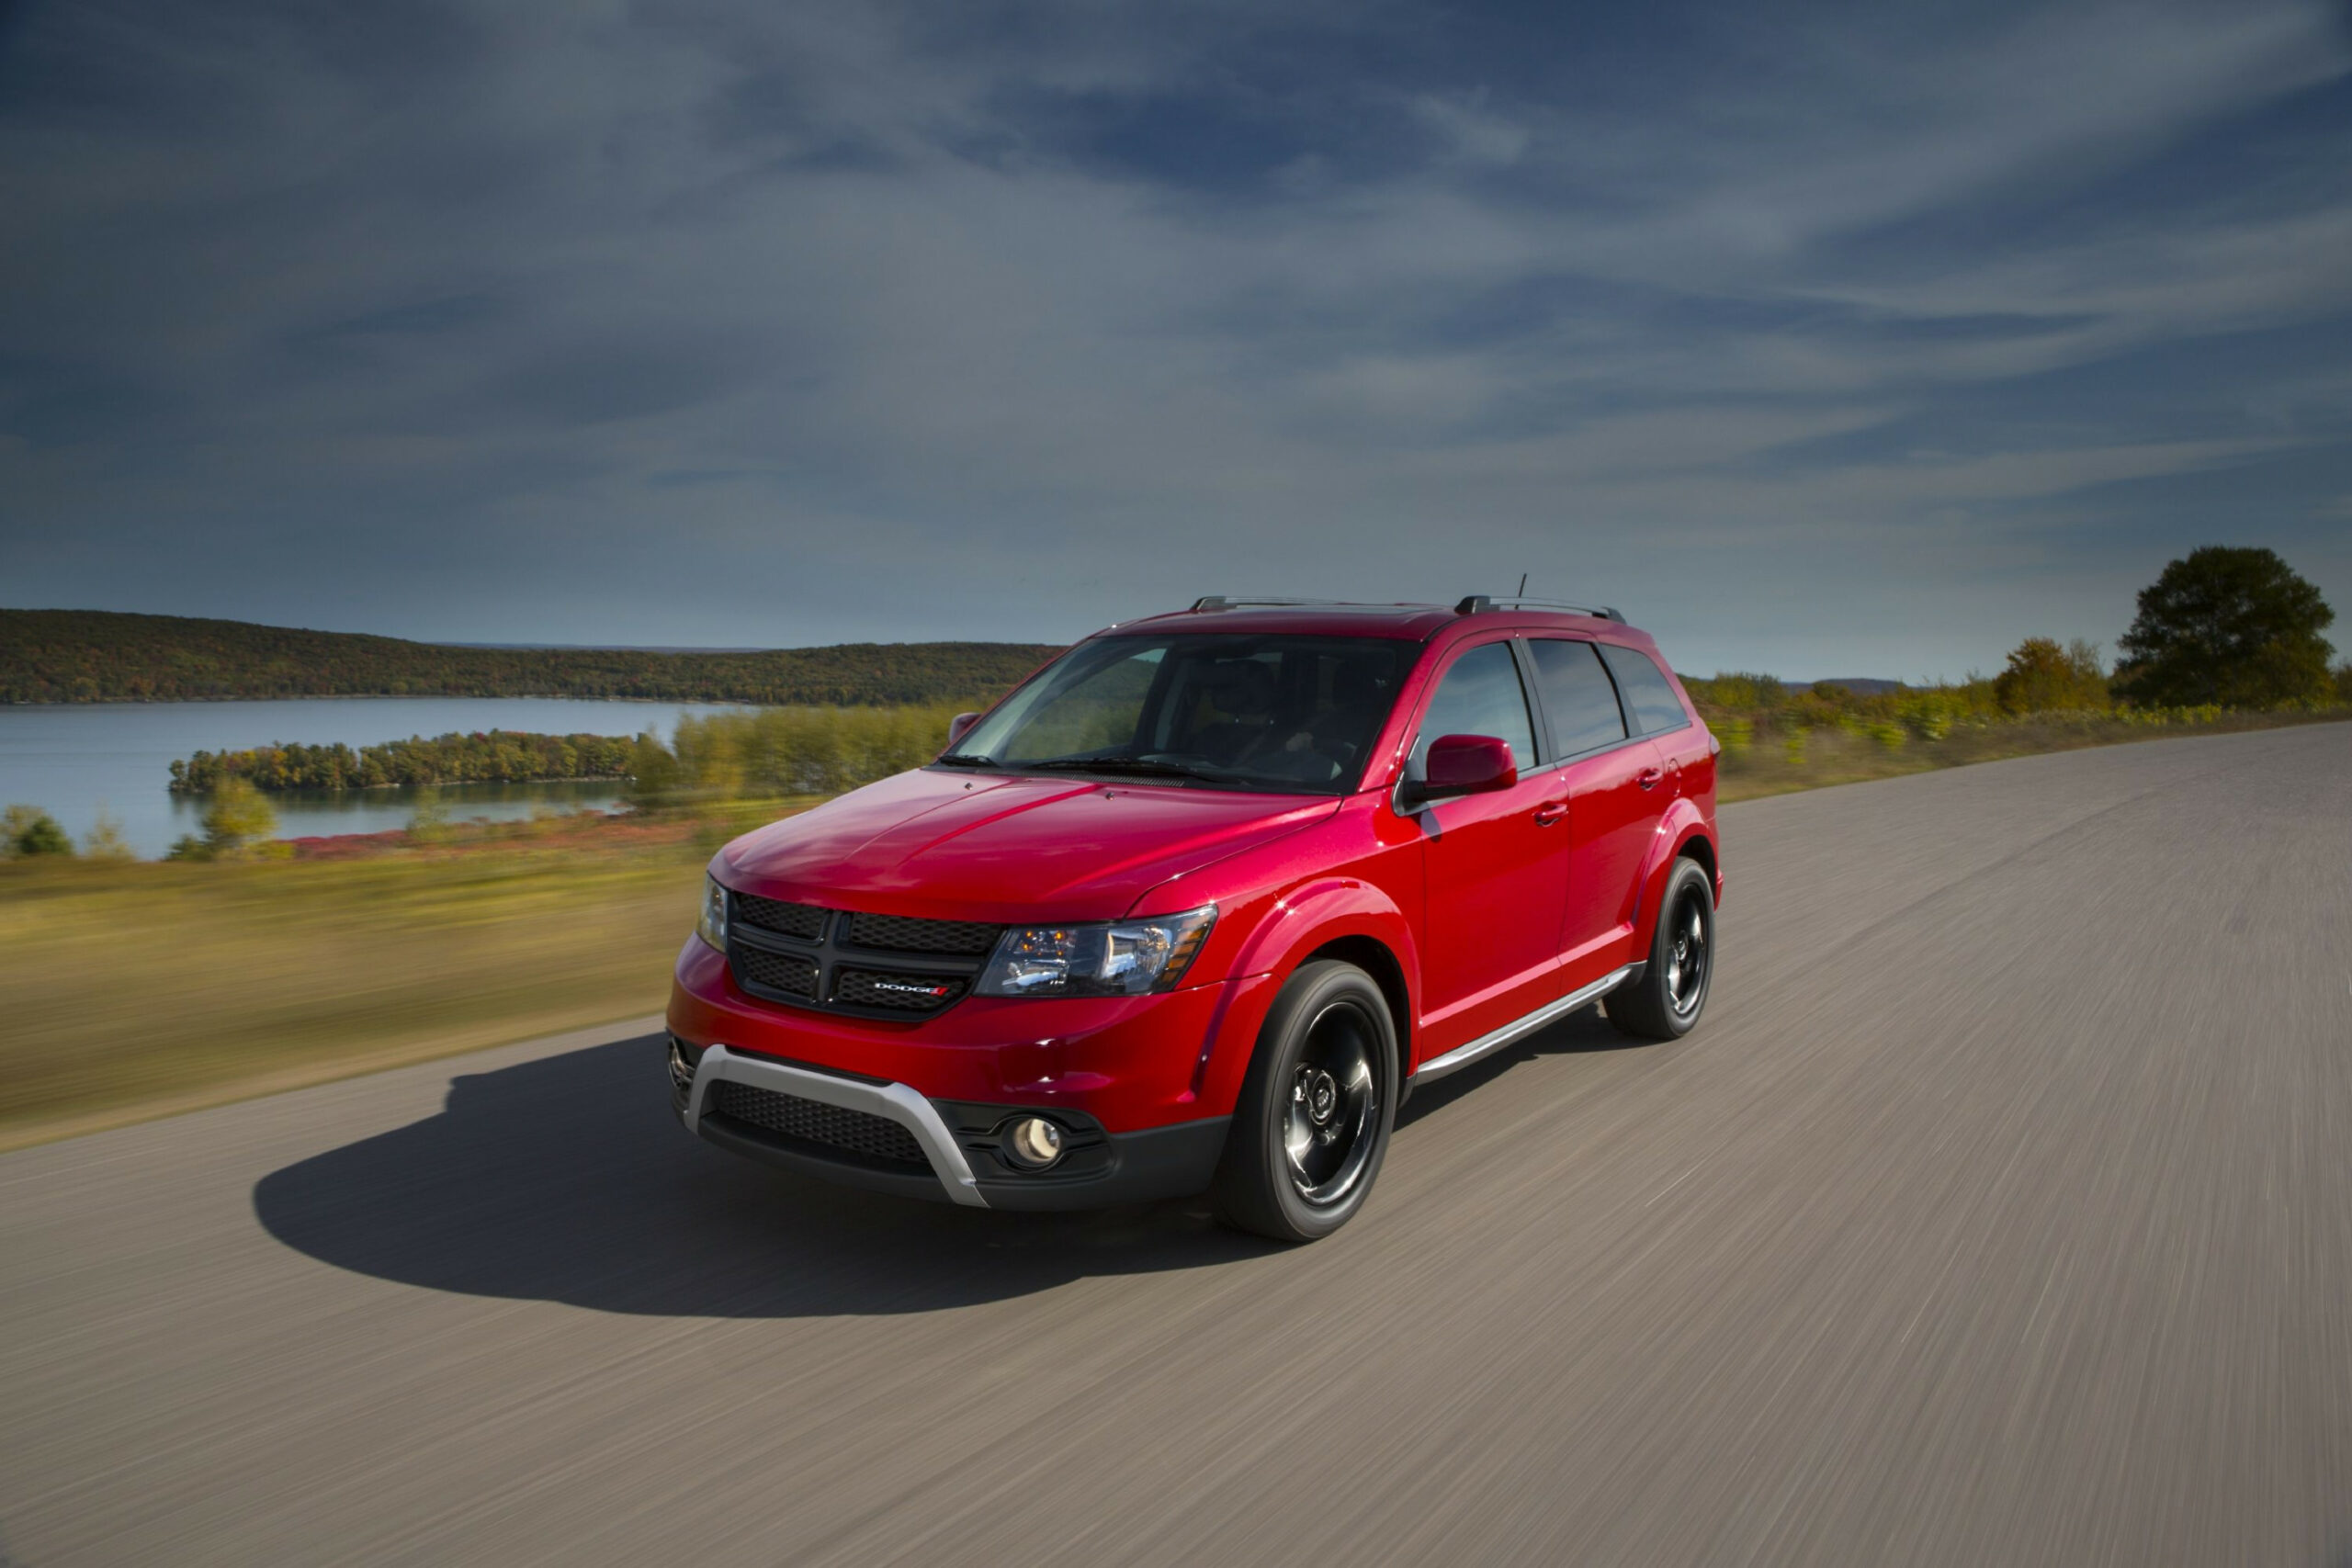 7 Dodge Journey Review, Pricing, and Specs